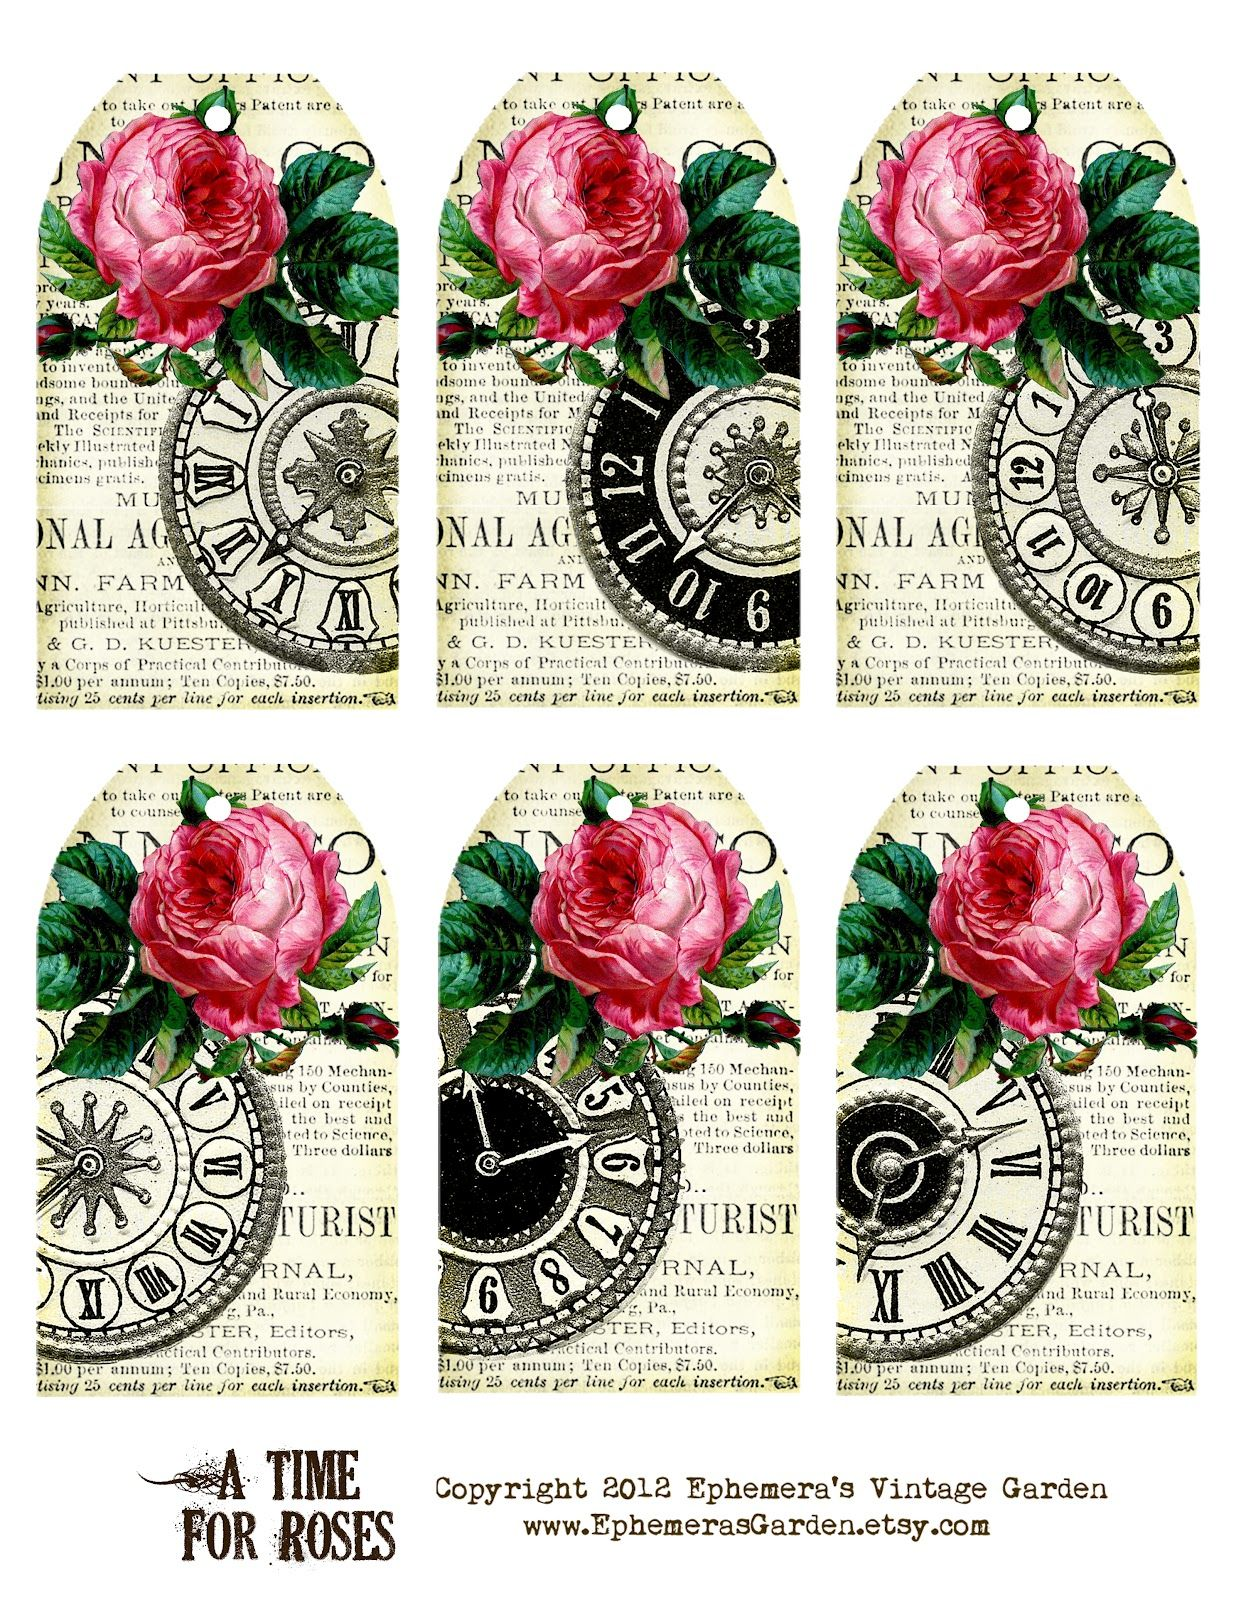 Ephemera S Vintage Garden Free Printable Of The Week Rose Clock Hang Tags Personal Use Only